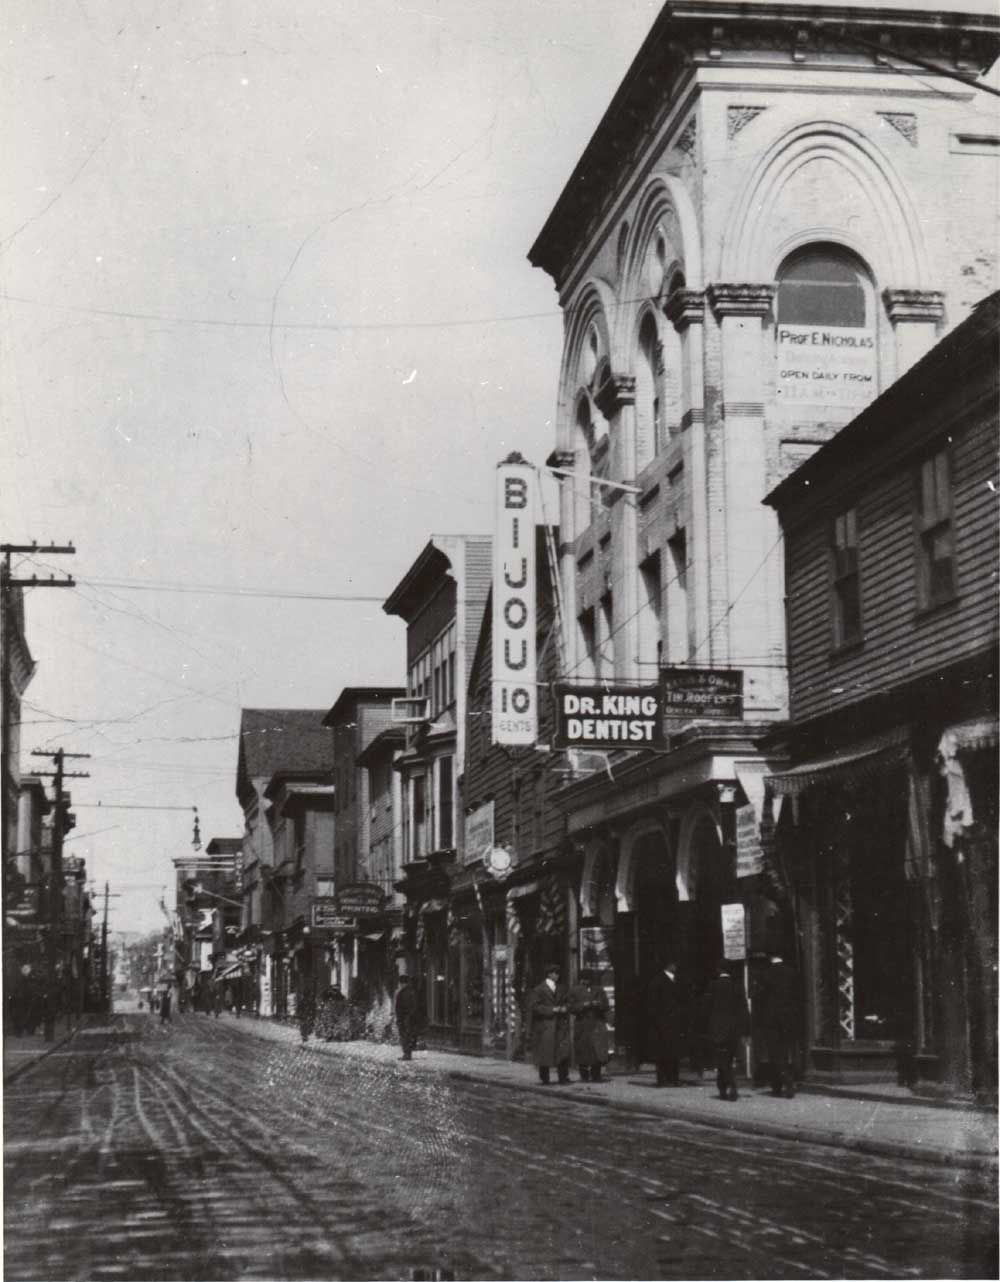 The Old Hermit: This Shot Is Of The Old Bijou Theater On Thames Street